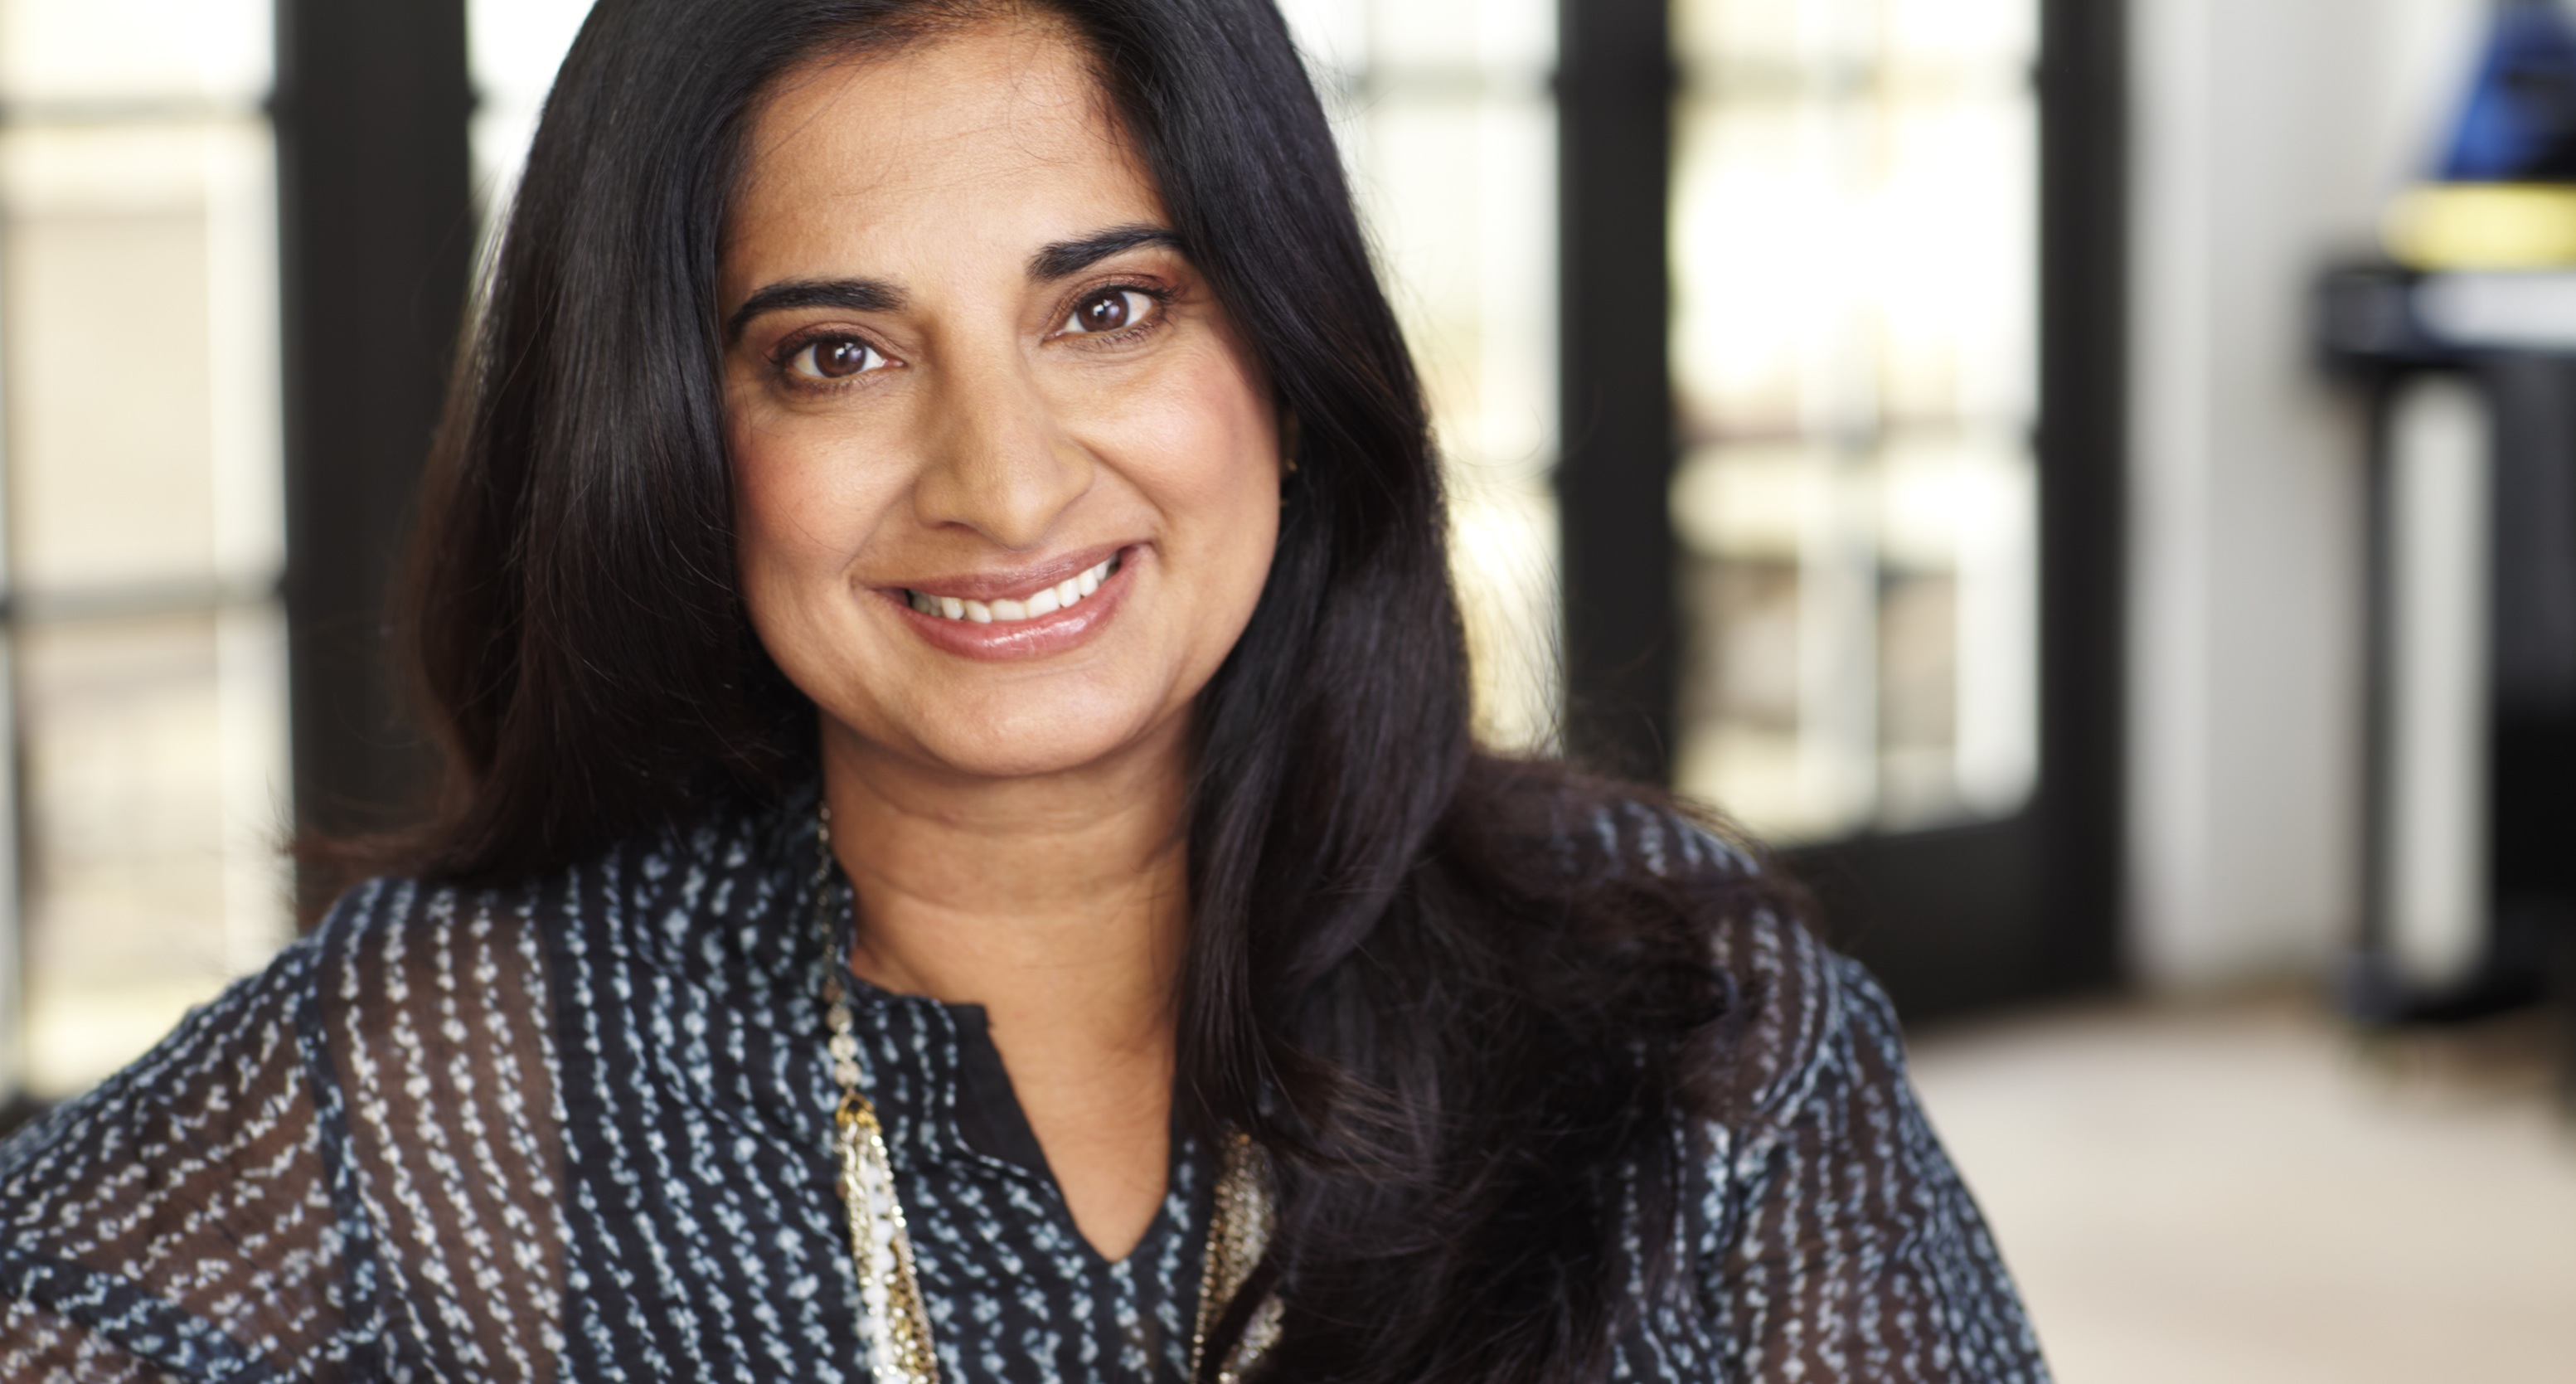 Author Mallika Chopra on Finding Happiness in the Moment